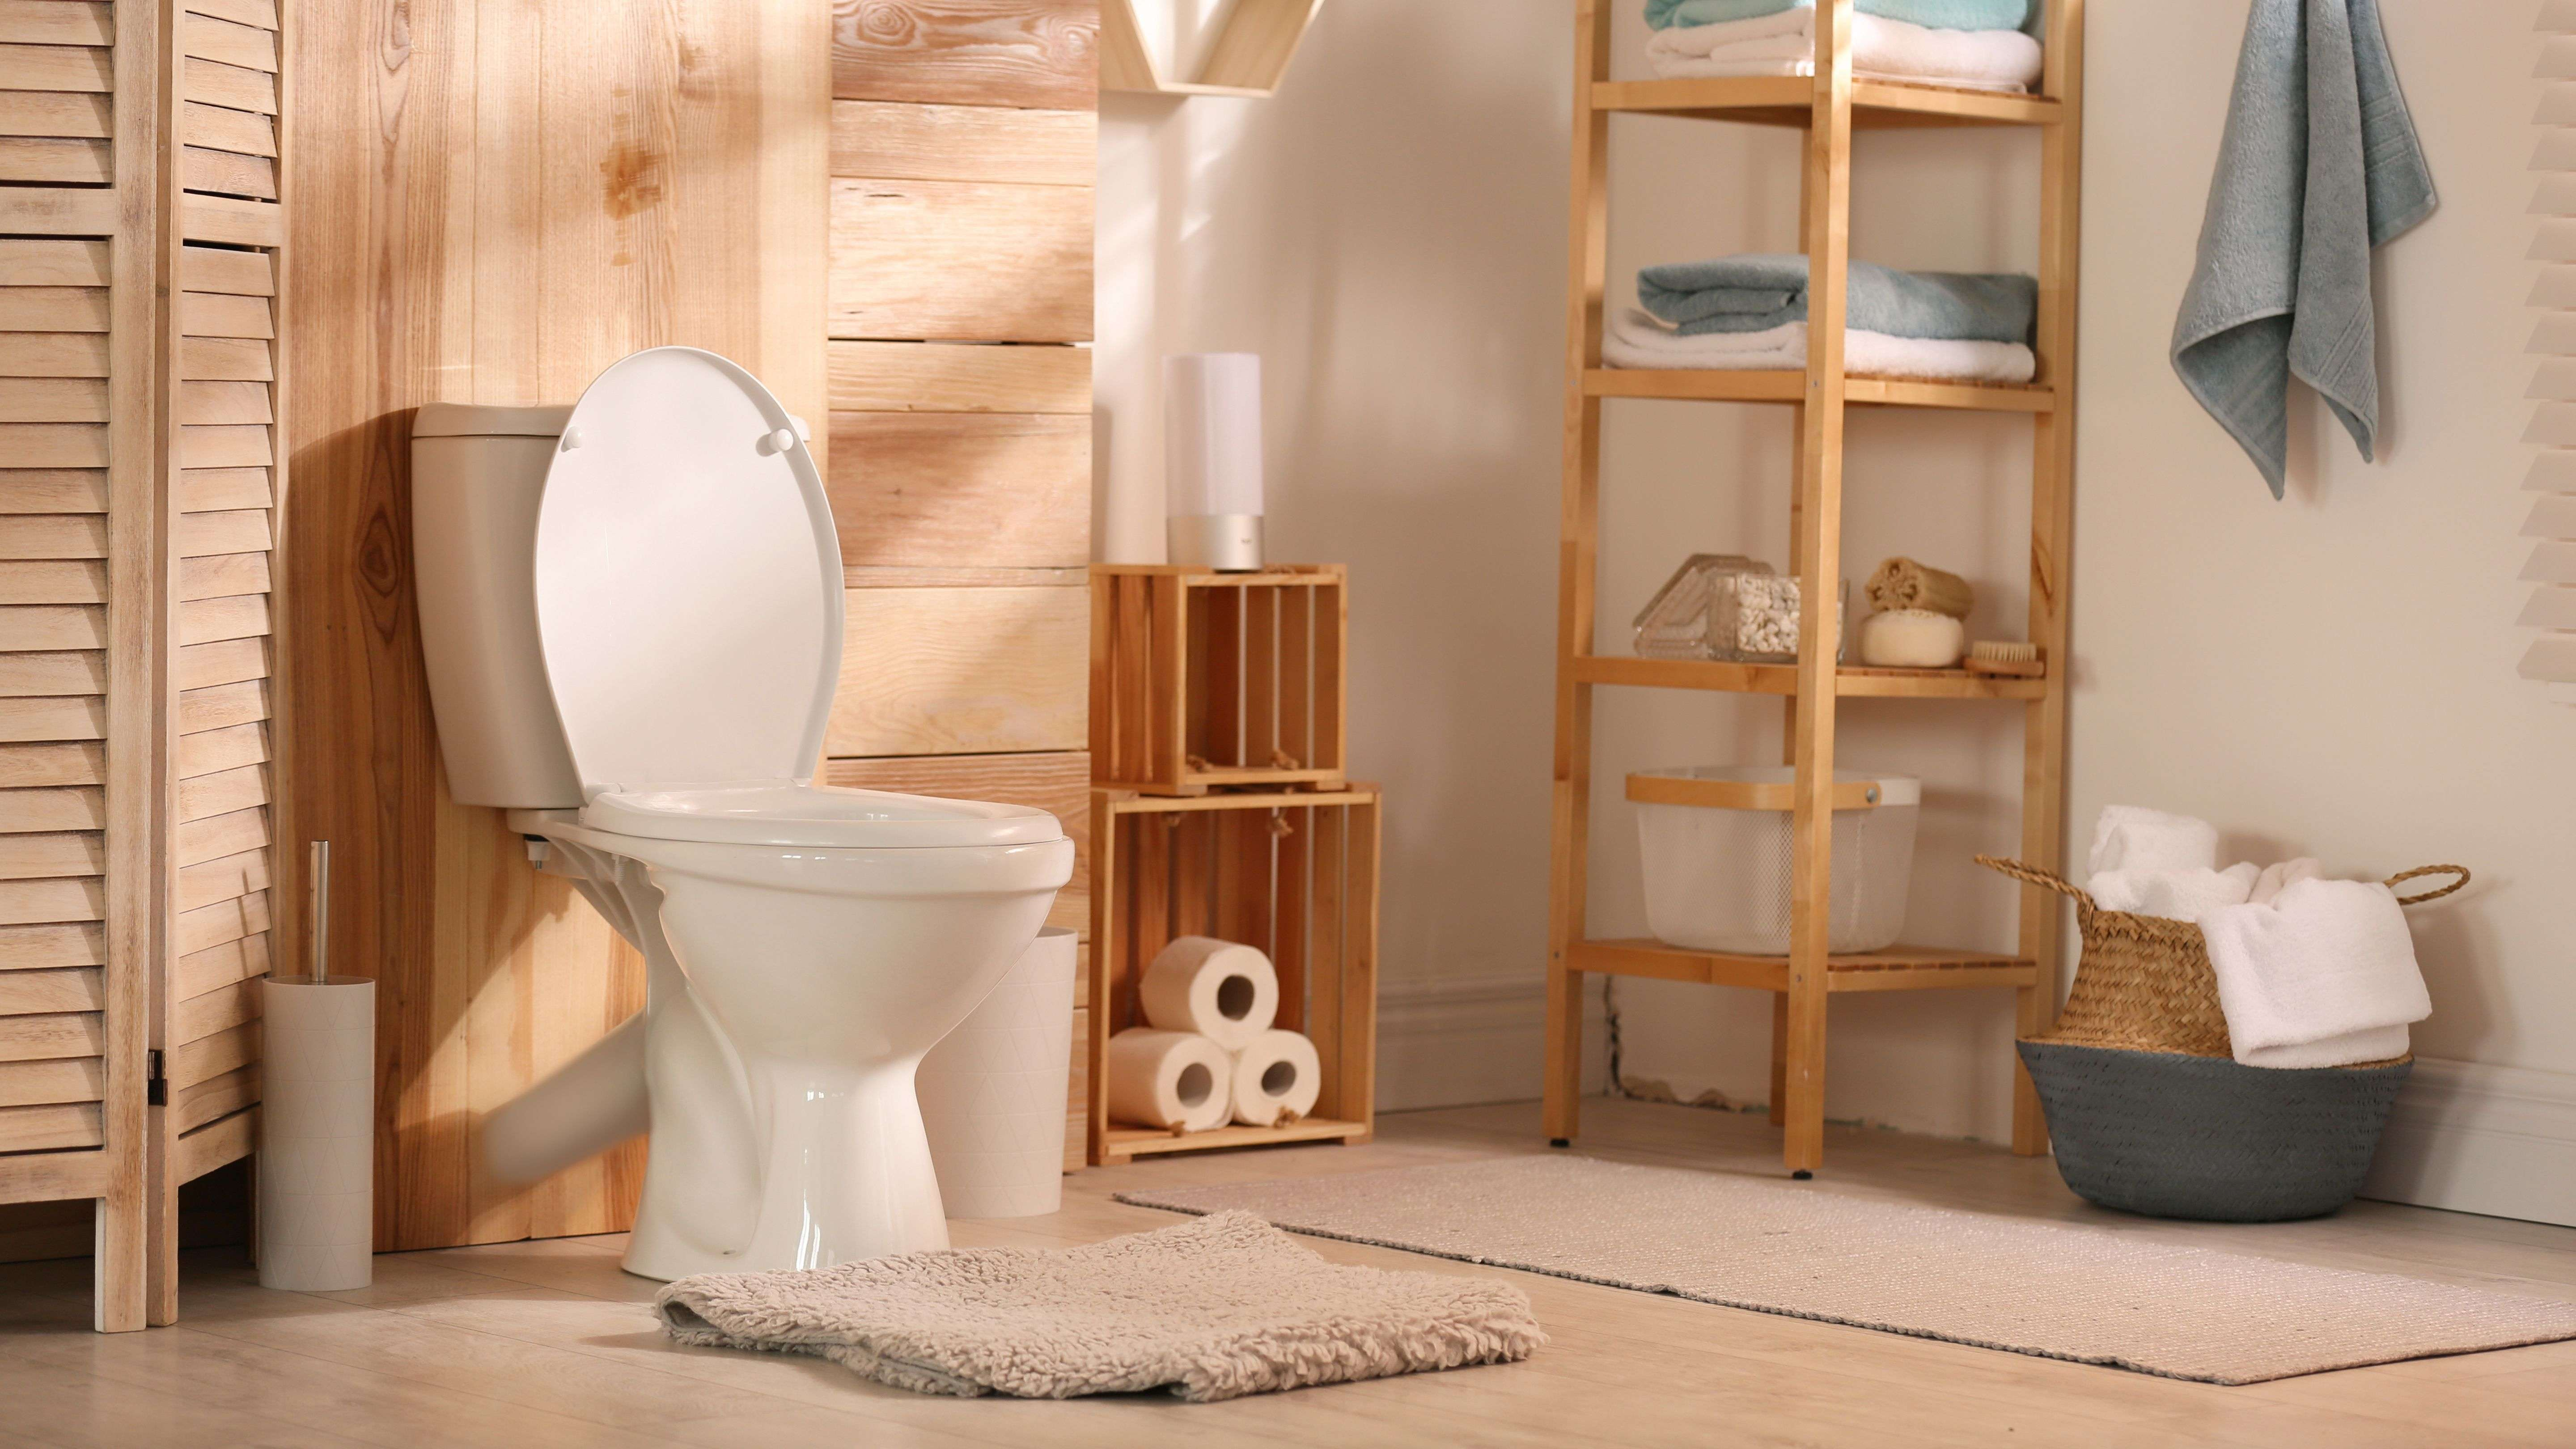 Toilet accessories buying guide